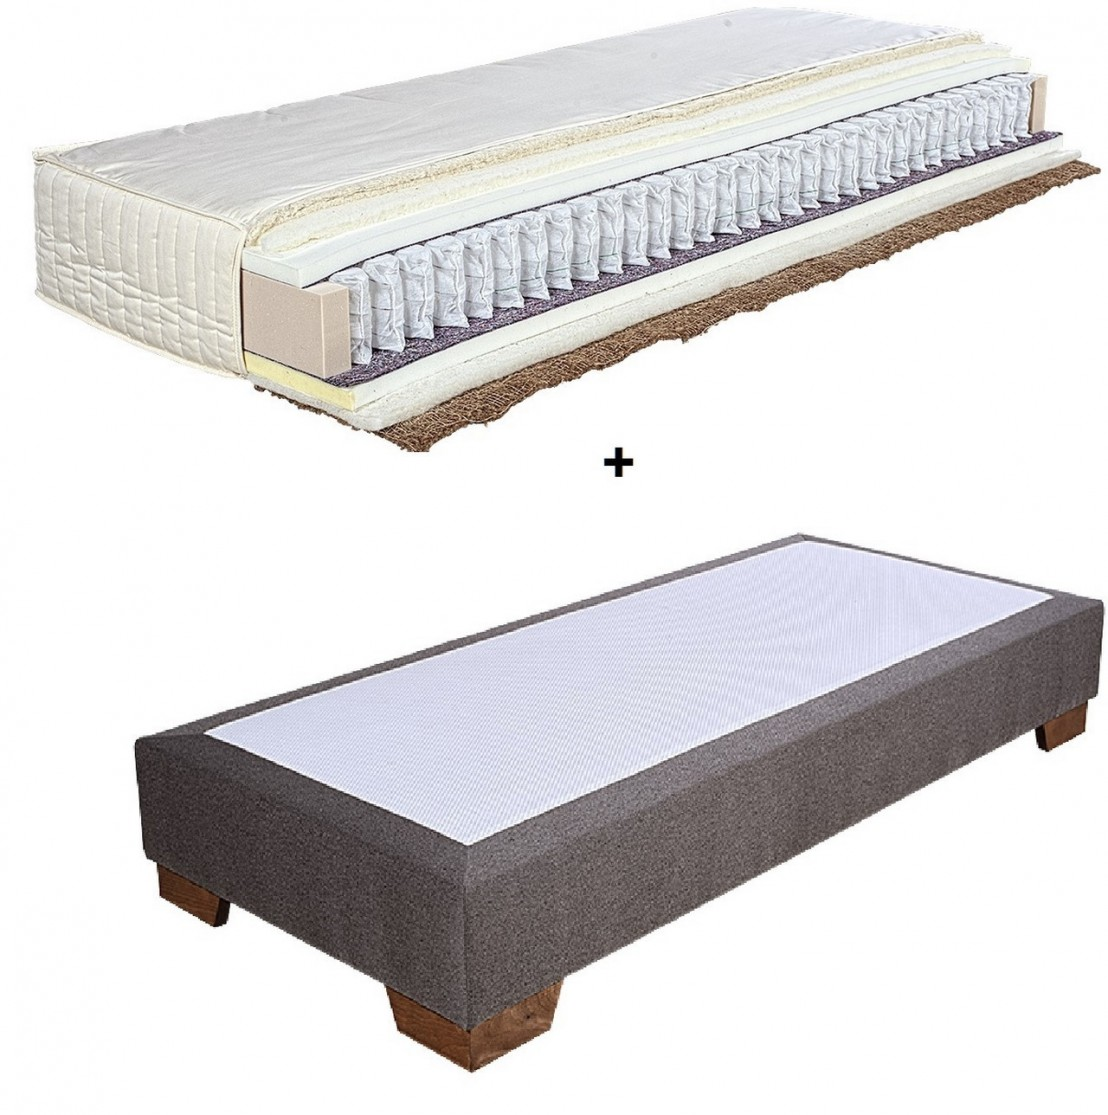 matelas 160 cm en fibres naturelles sommiers clemens livraison gratuite. Black Bedroom Furniture Sets. Home Design Ideas